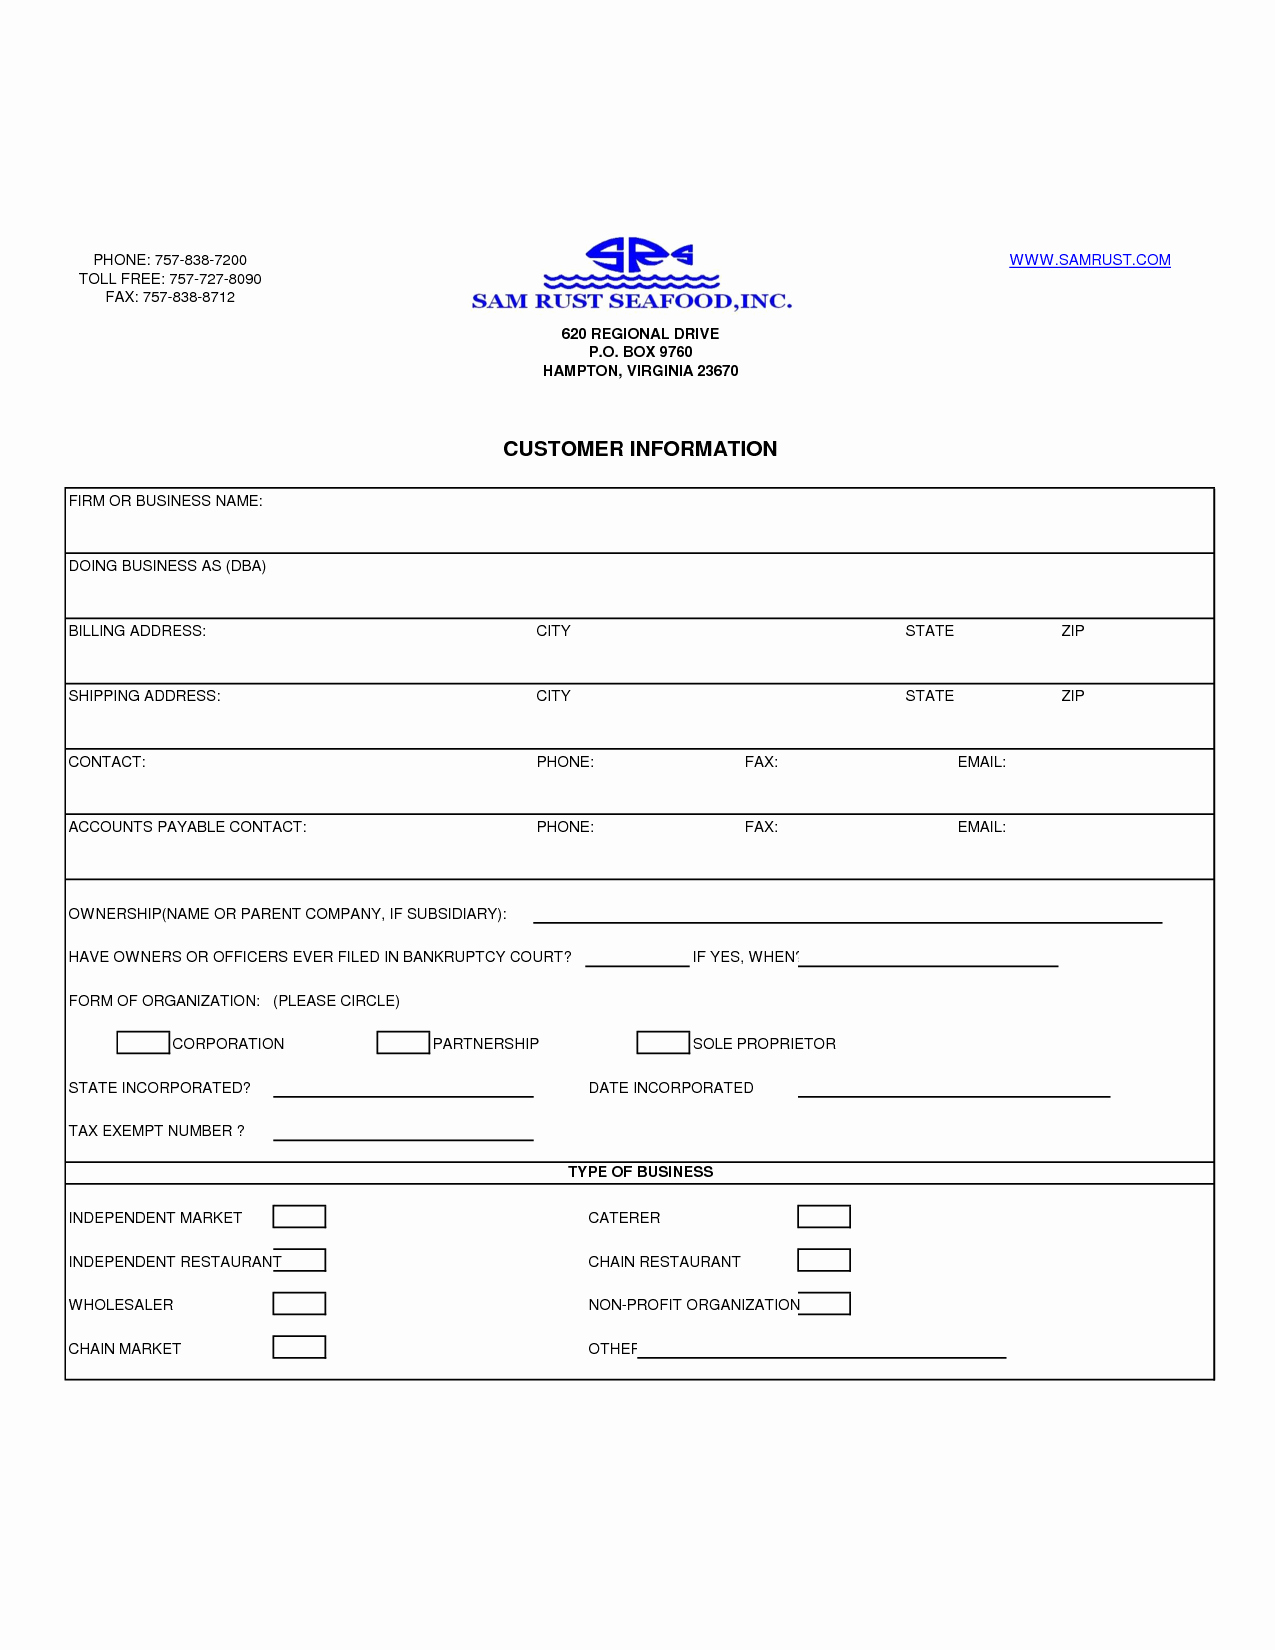 Customer Information form Template Microsoft Word asli